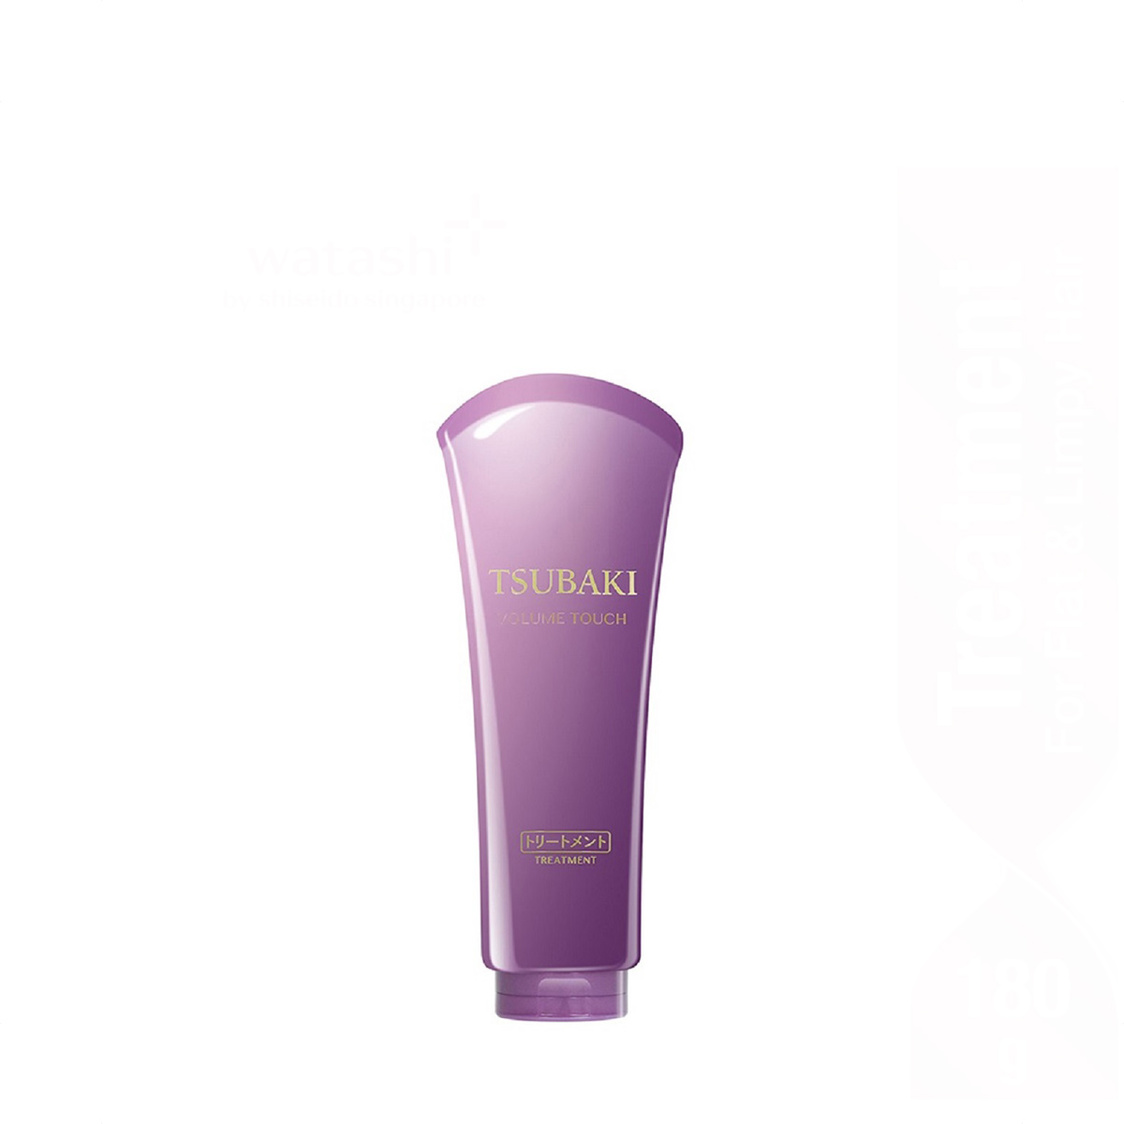 Volume Touch Treatment 180g